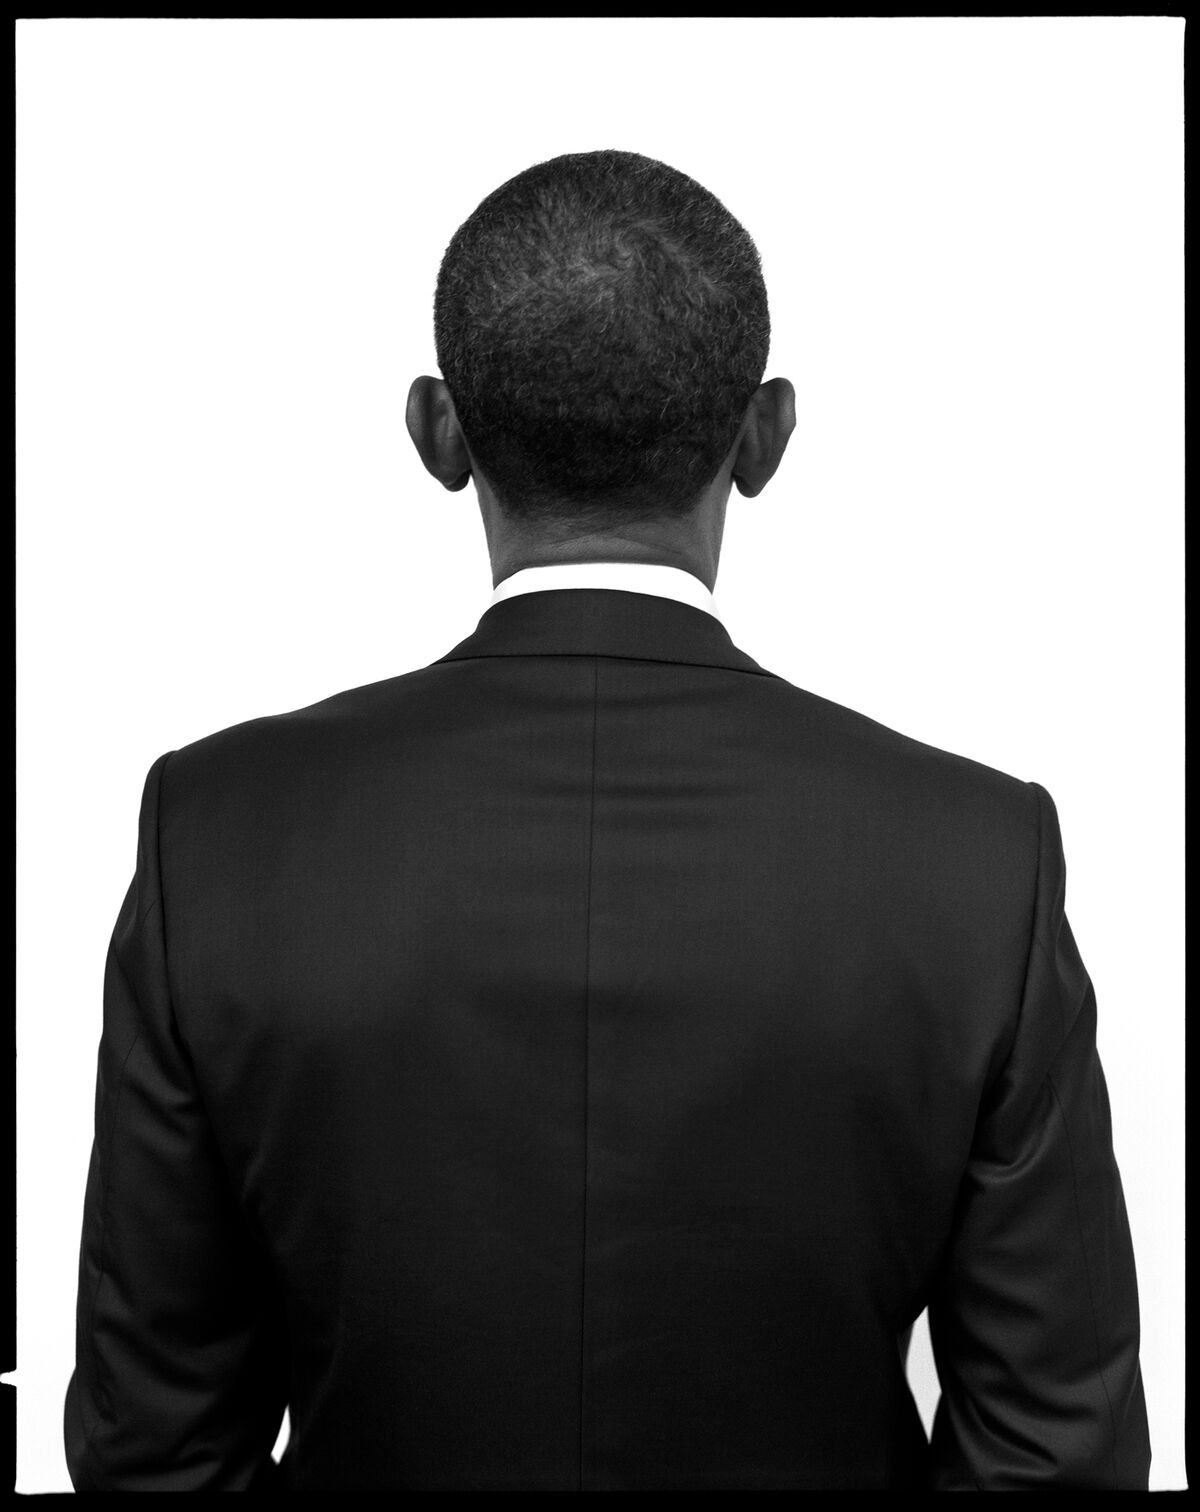 Mark Seliger, President Barack Obama, Washington, D.C., 2010. Courtesy of the artist.